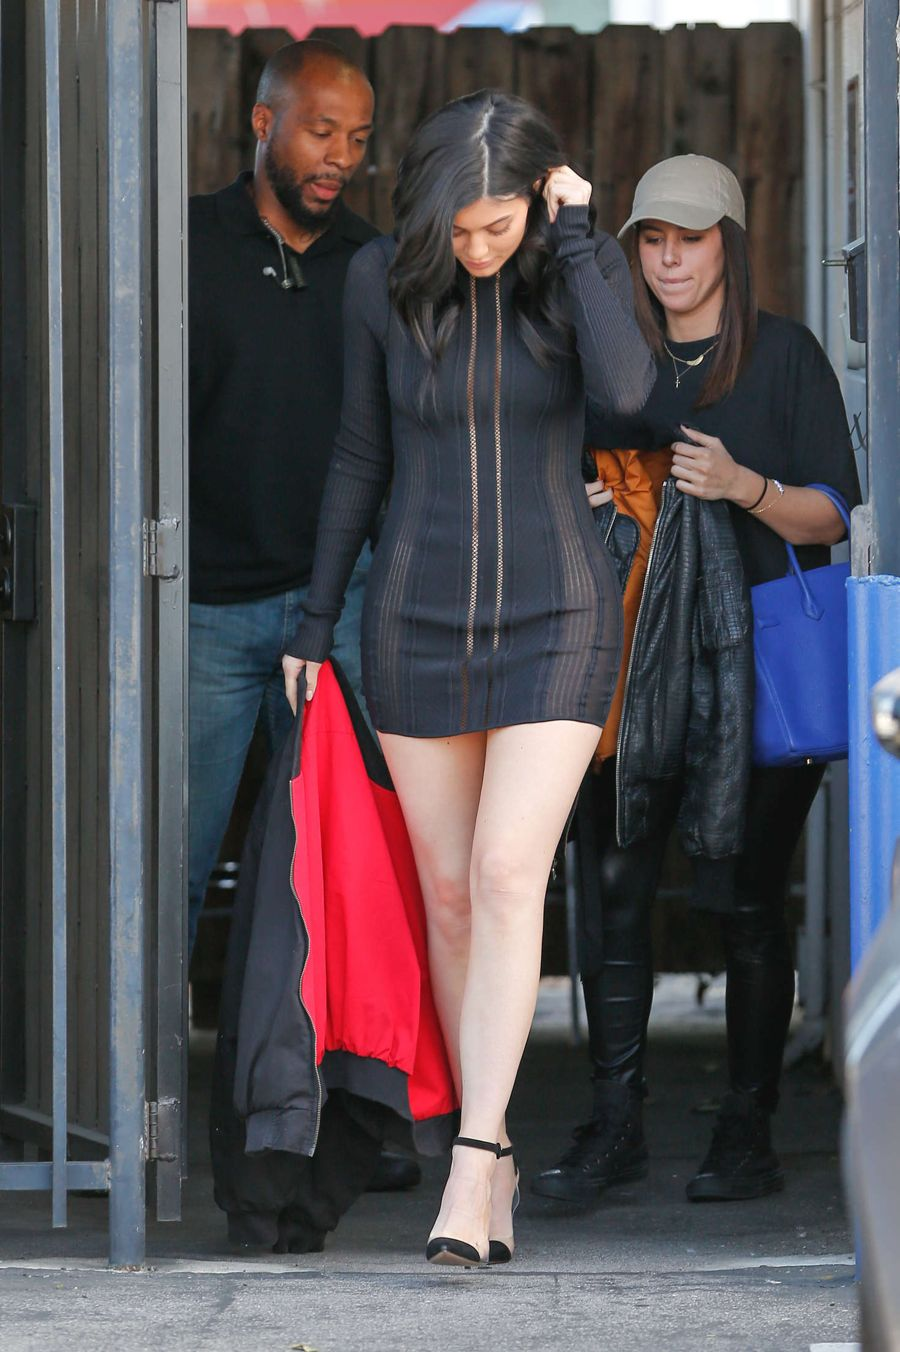 Kylie Jenner in Black Mini Dress at the studio in van Nuys